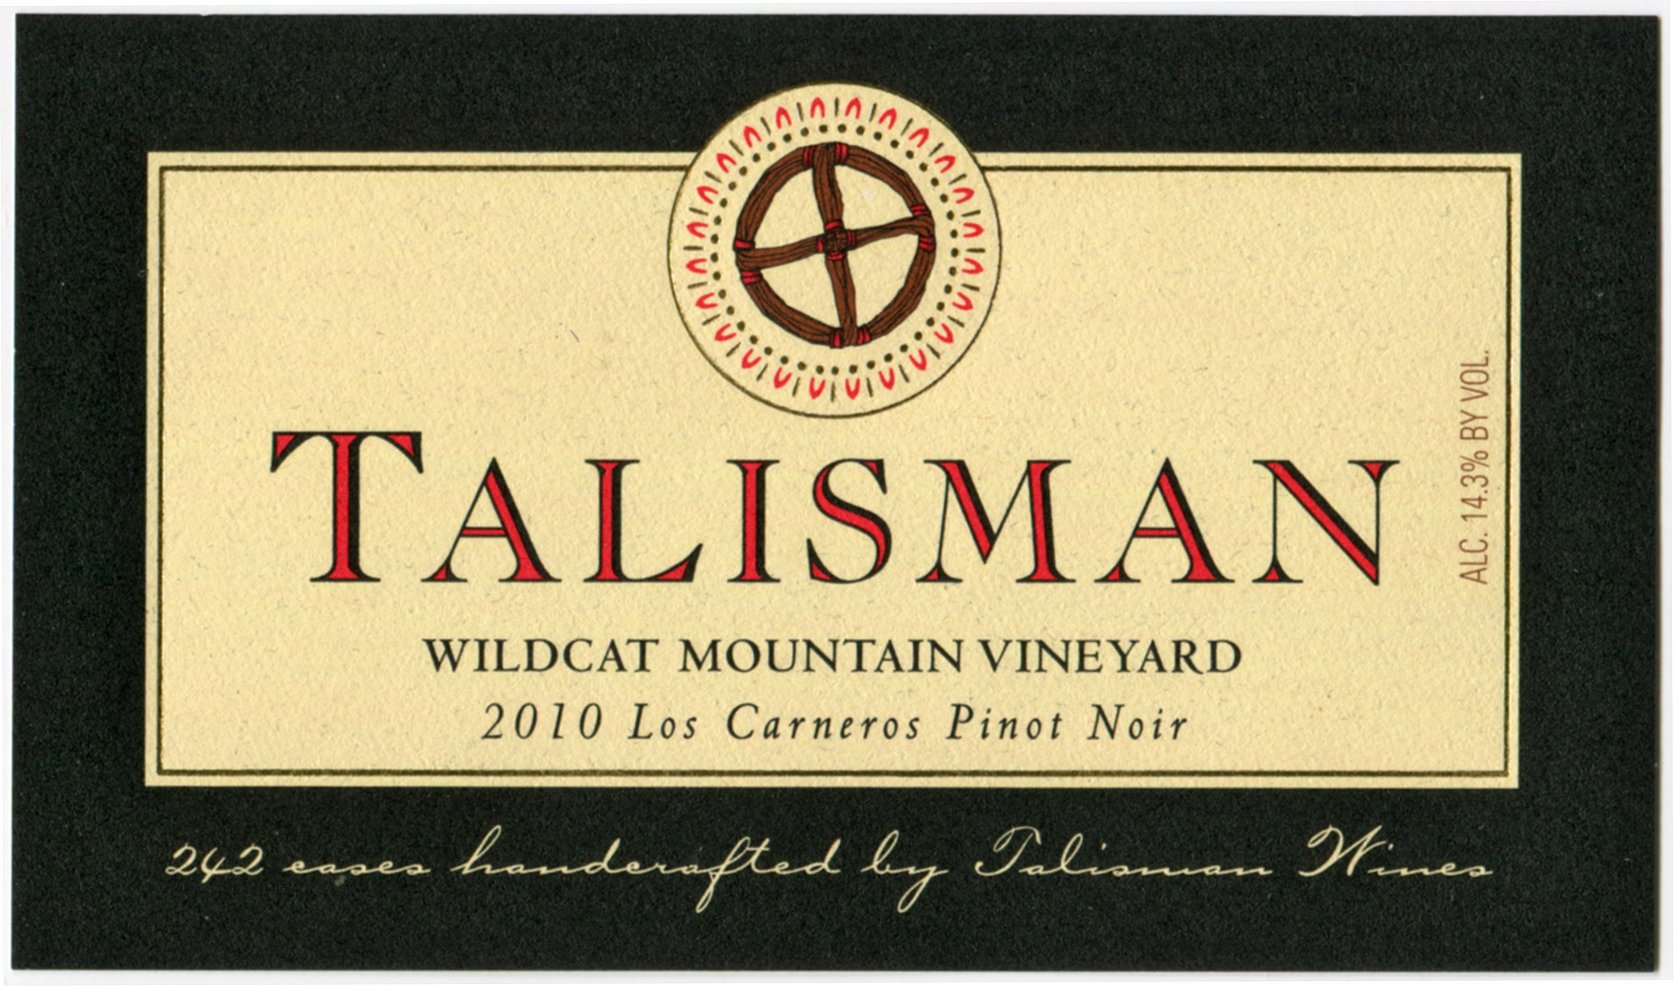 2010 Wildcat Mountain Vineyard / Los Carneros Pinot Noir Product Image